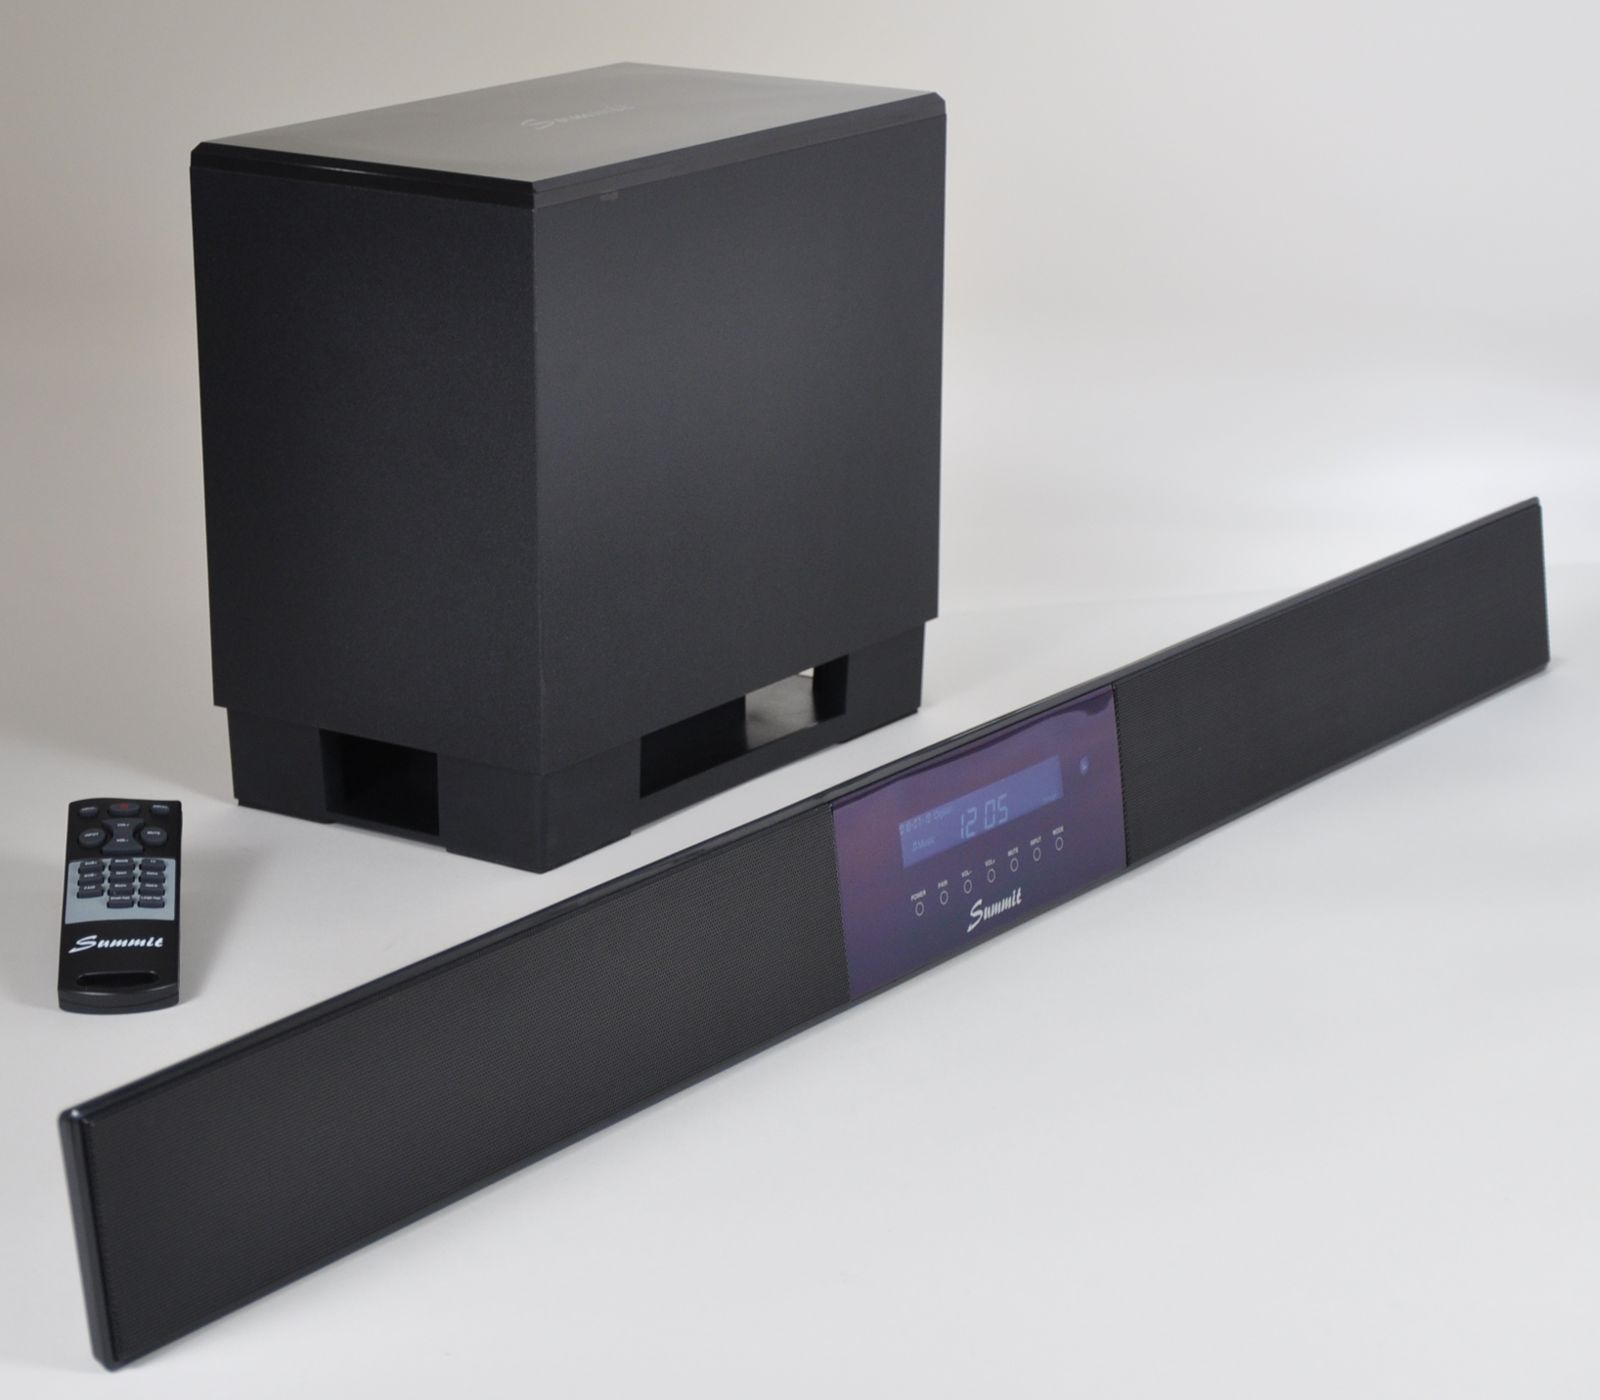 Soundbar Weiß Erwin Weiss Gmbh Summit Soundbar A50 1000b With Bluetooth